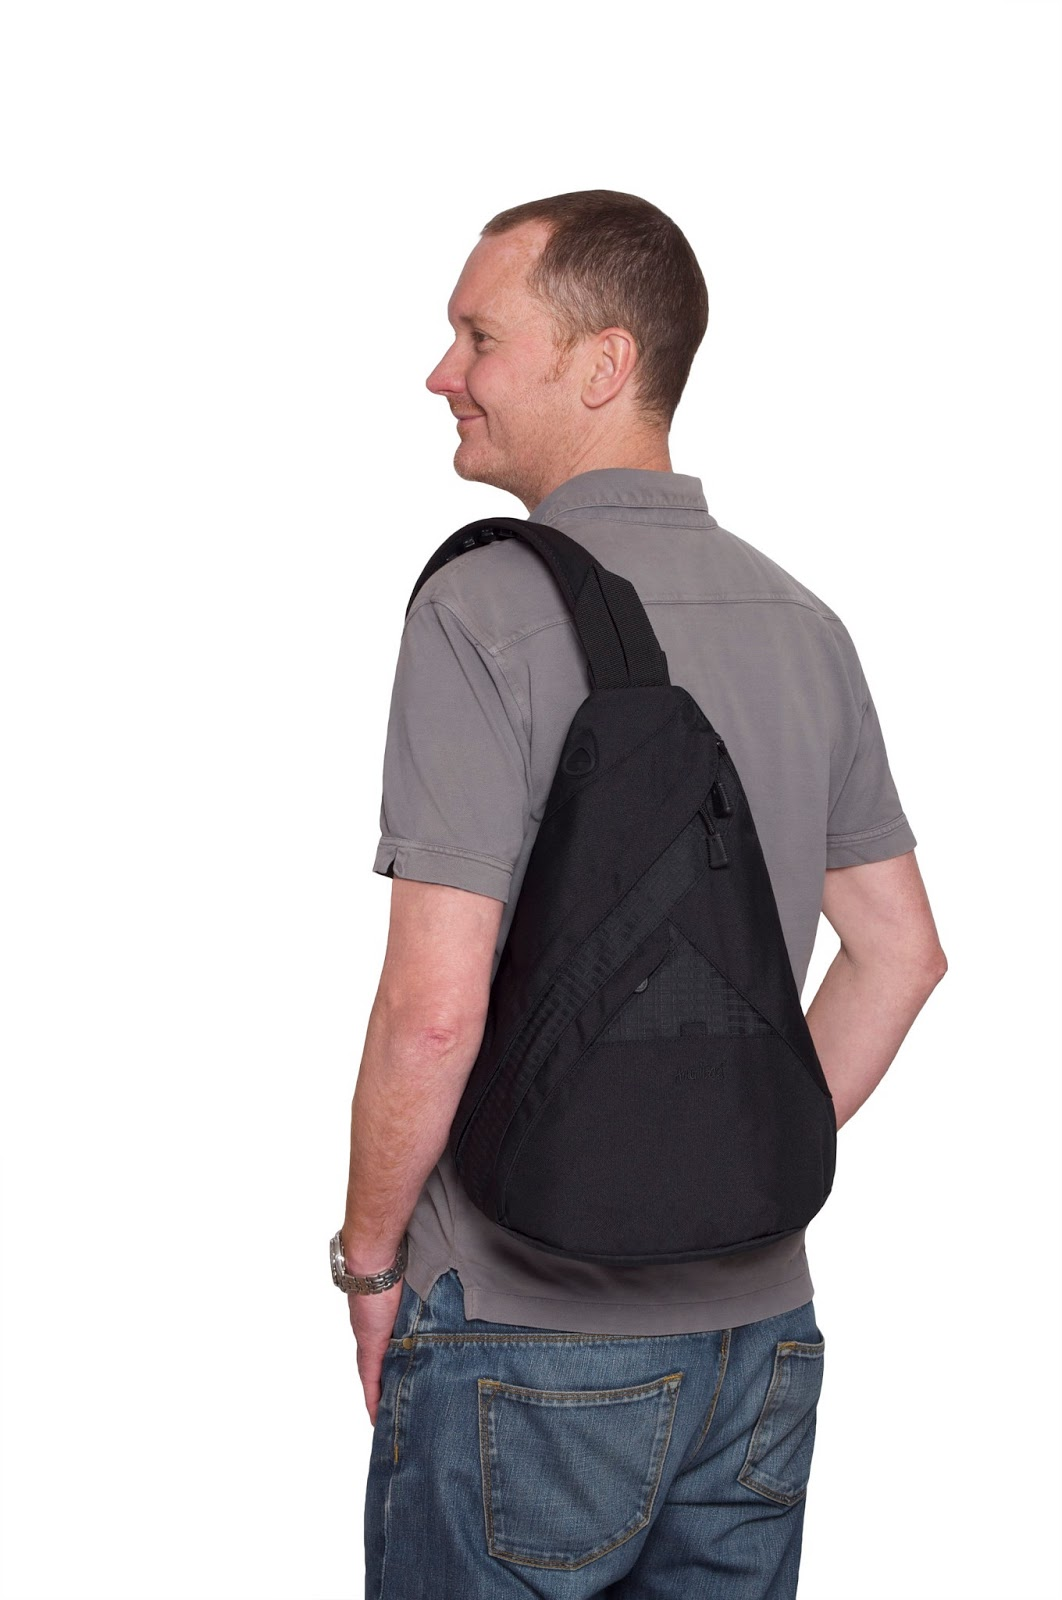 The Healthy Back Bag Company, Healing Back Pain, Ease, Healthy, Kelly Martin Speaks